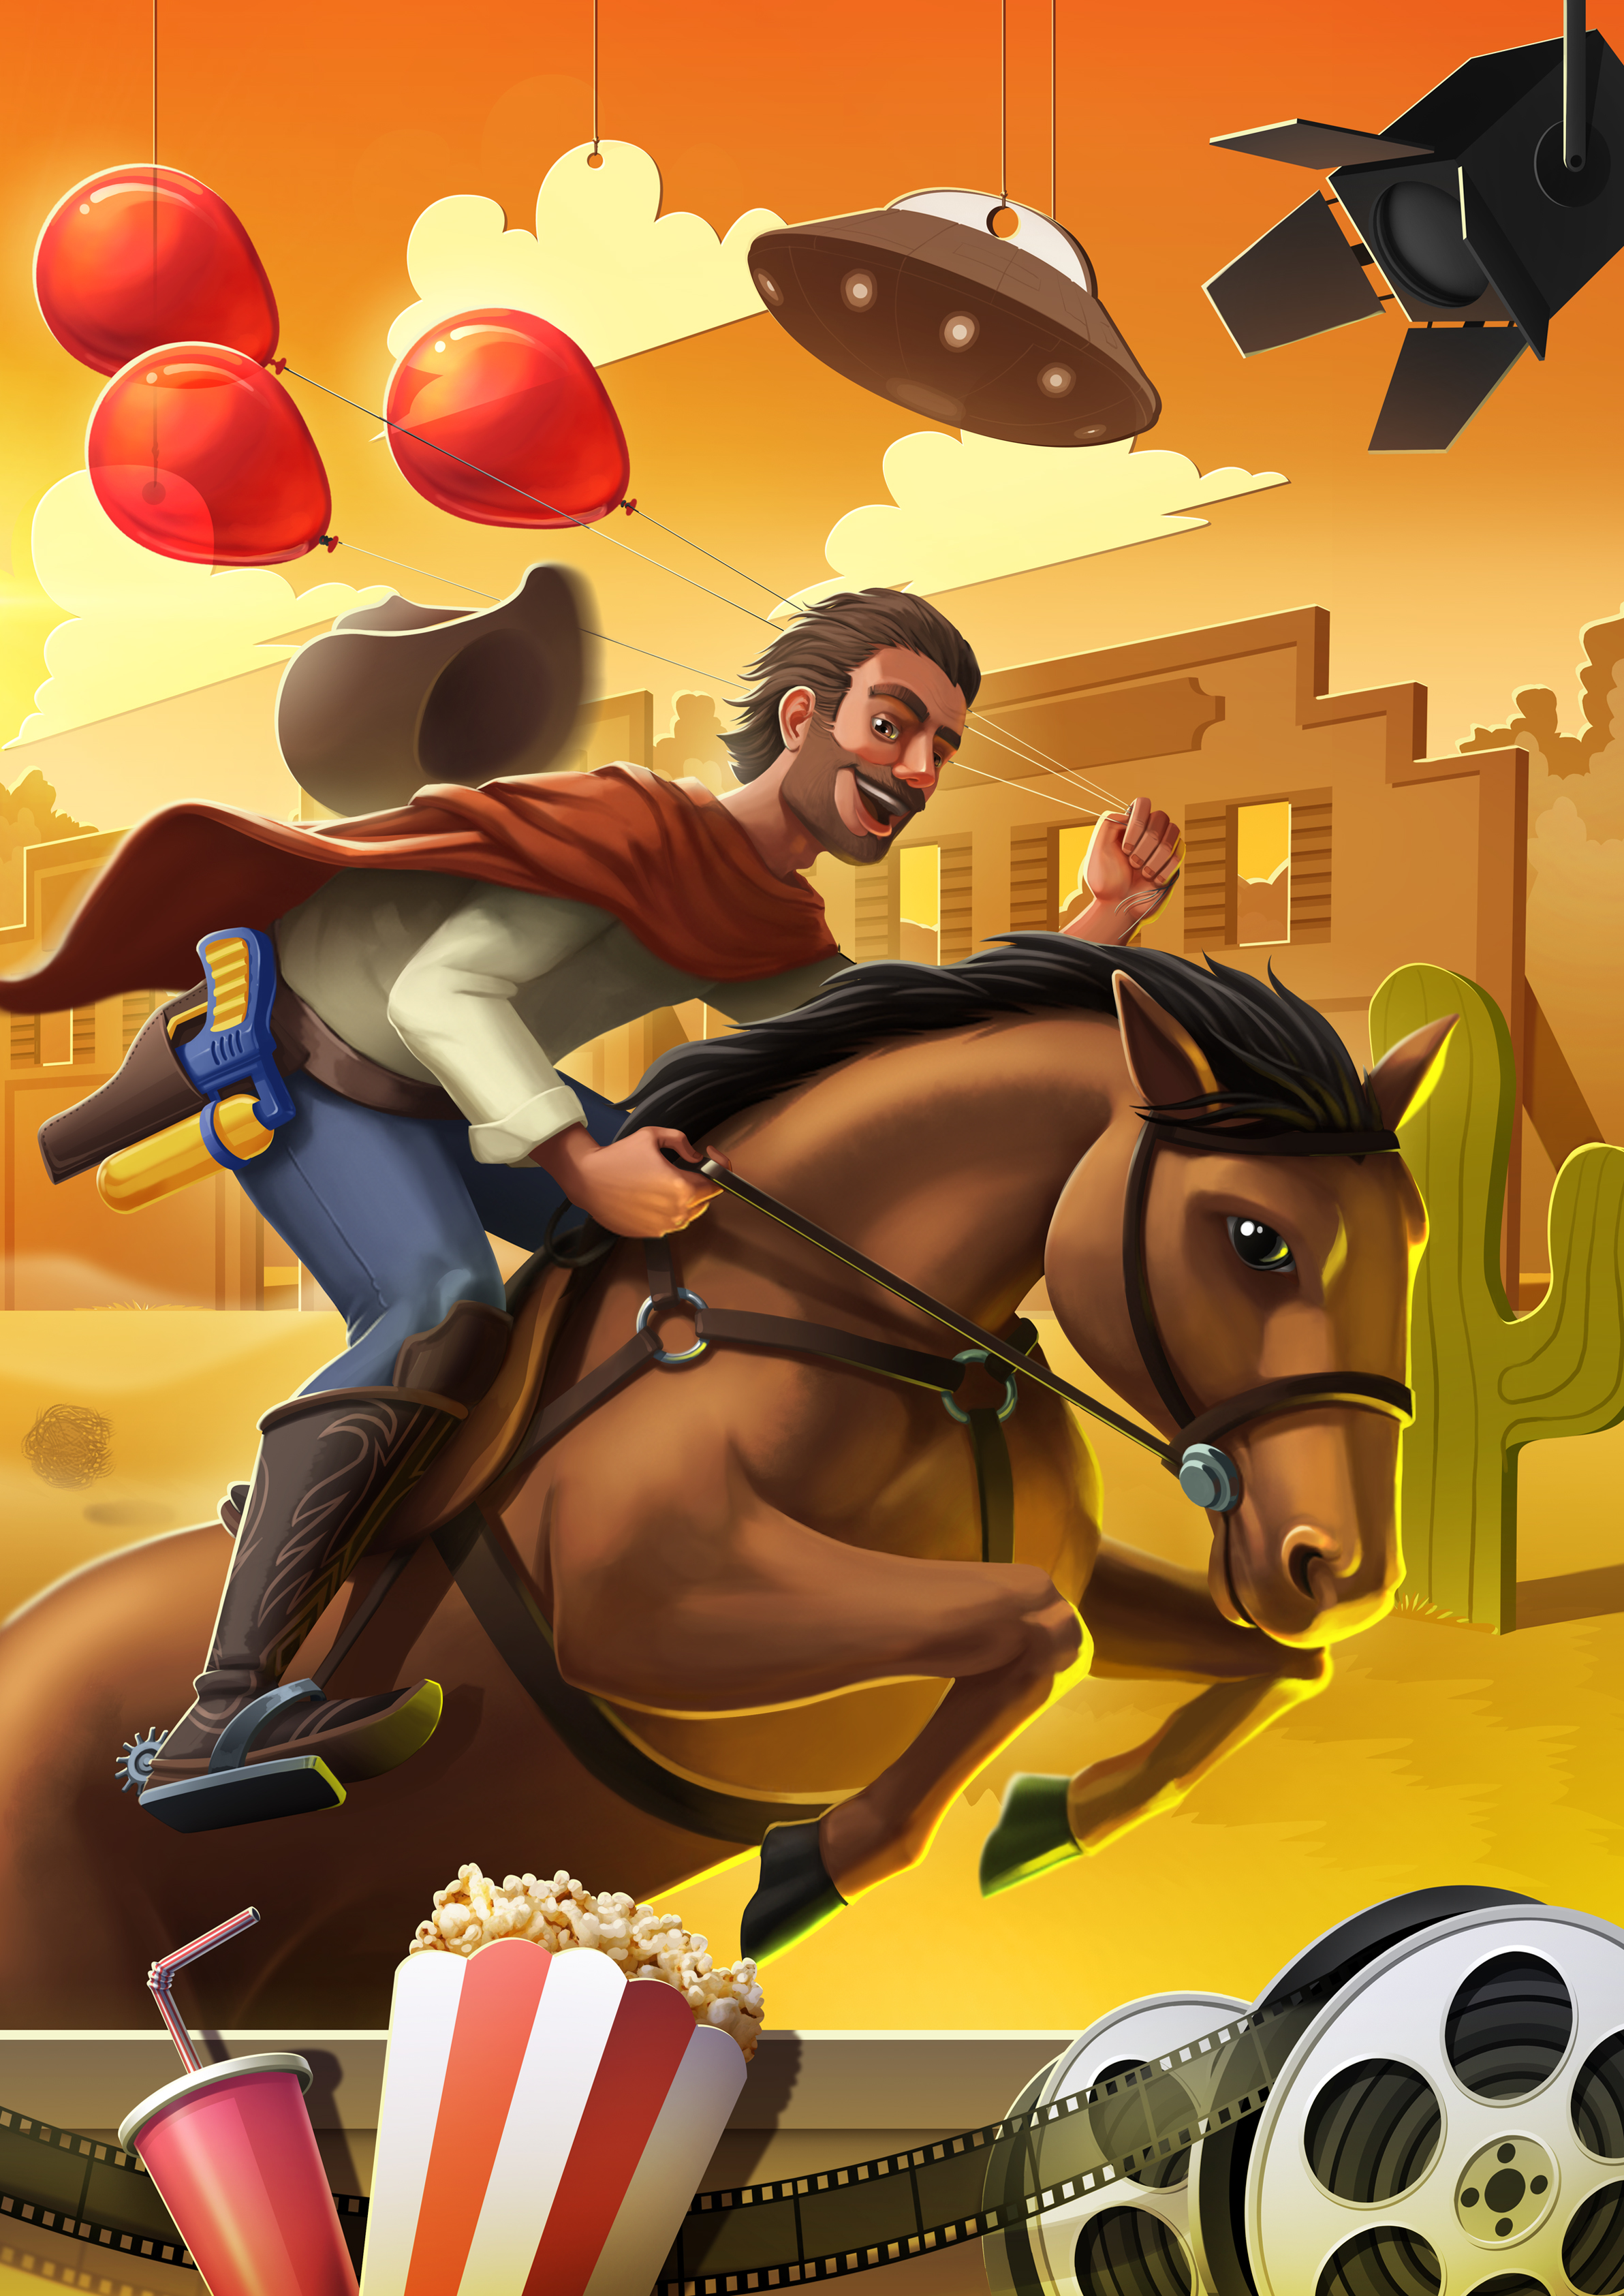 Splash Art Image Illustration Poster Character Design Western